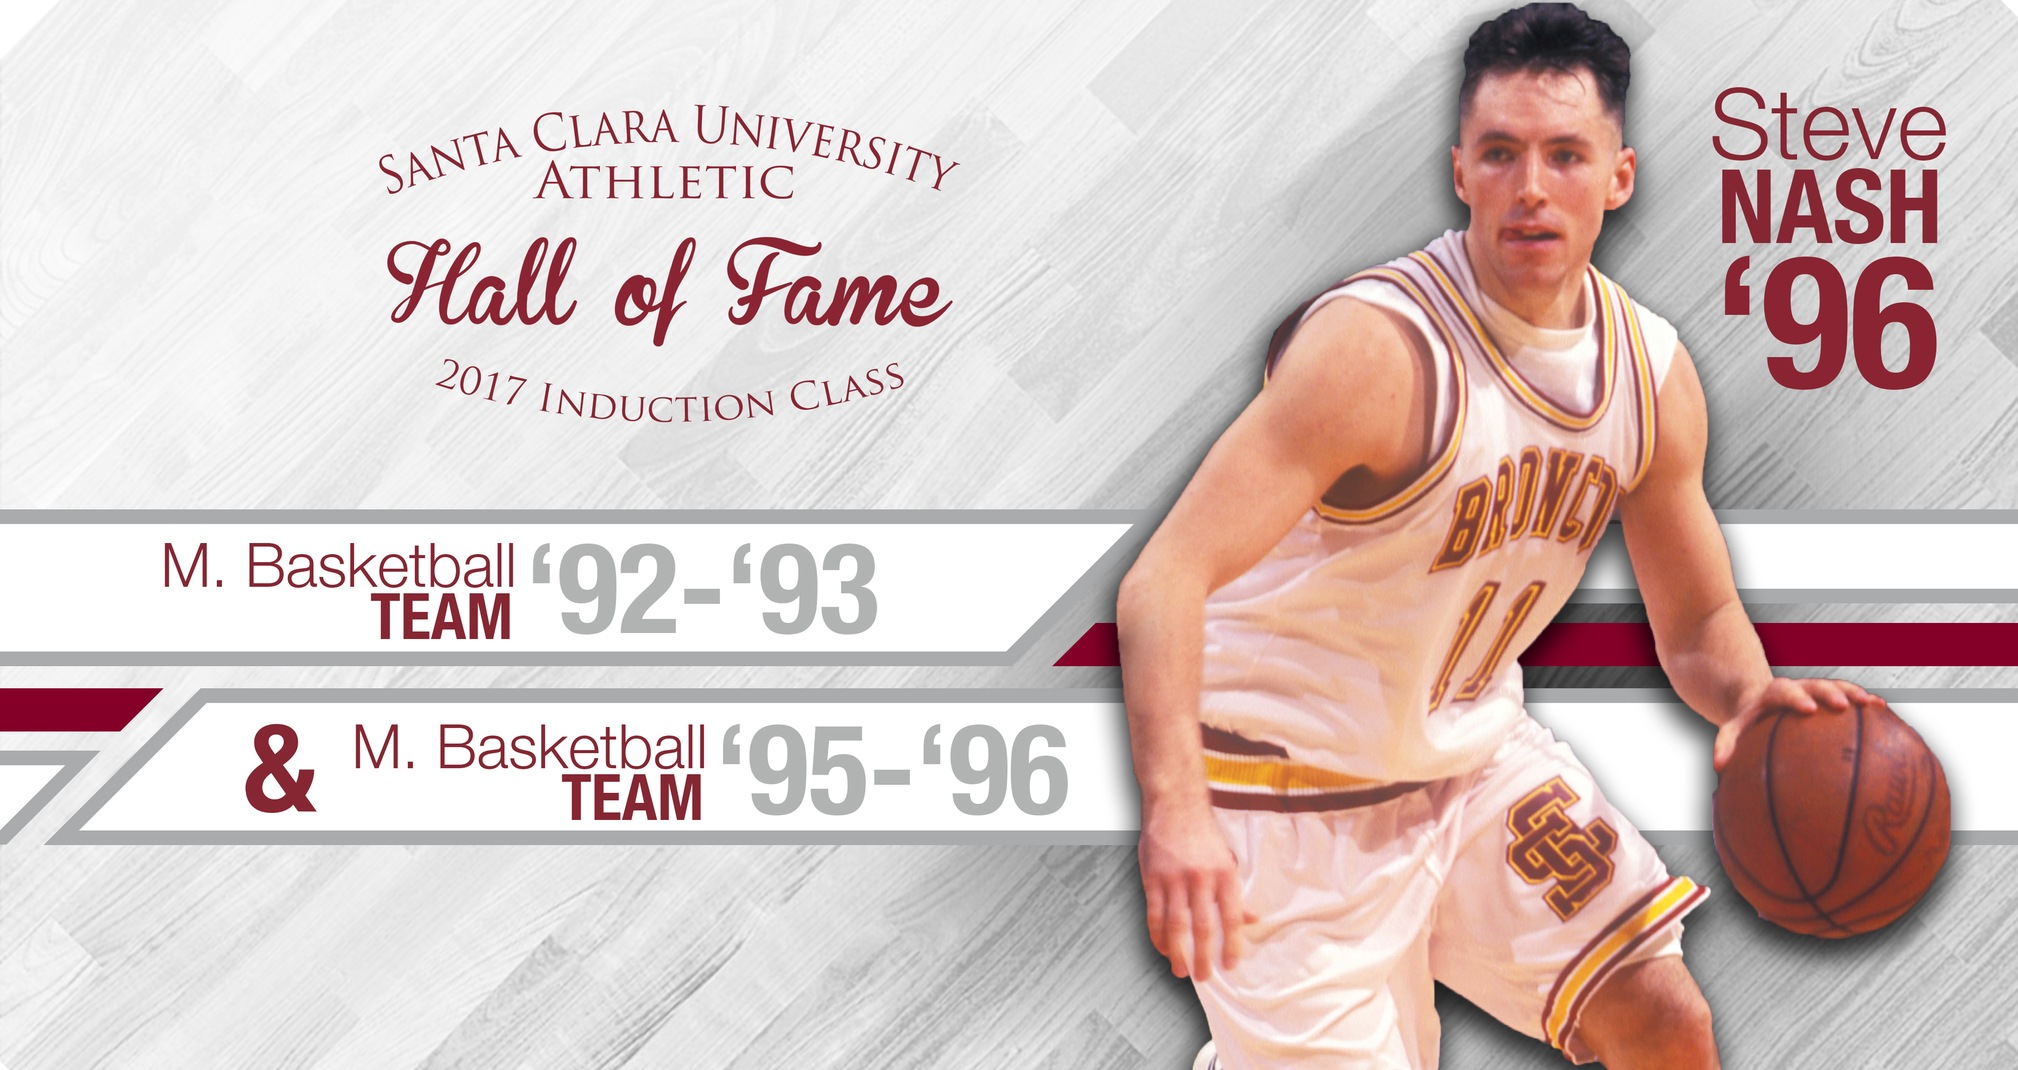 Nash, Two Standout Men's Basketball Teams Head to Santa Clara Athletics Hall of Fame